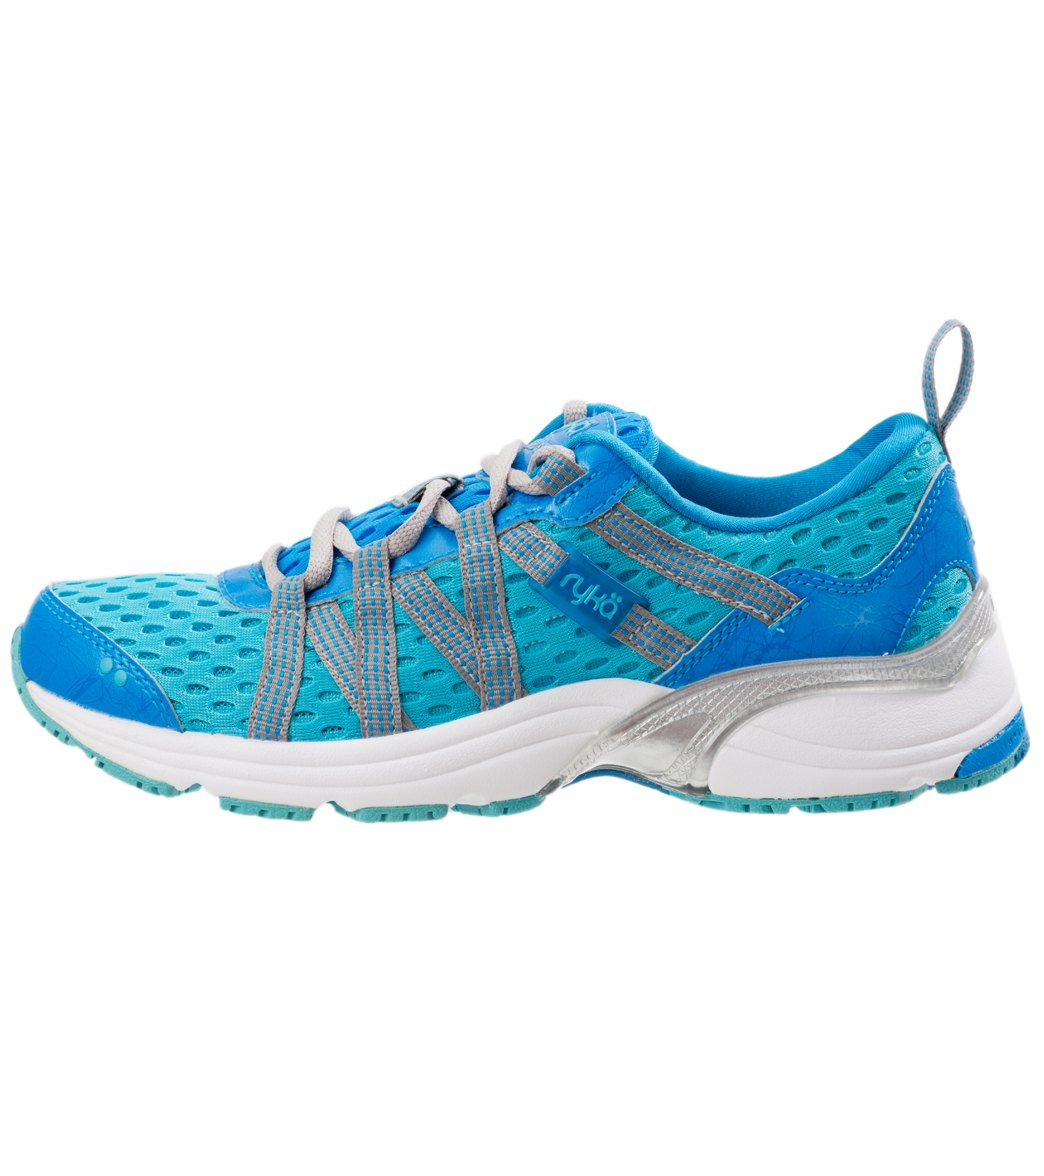 Ryka Women's Hydro Sport Water Shoes at SwimOutlet.com - Free Shipping